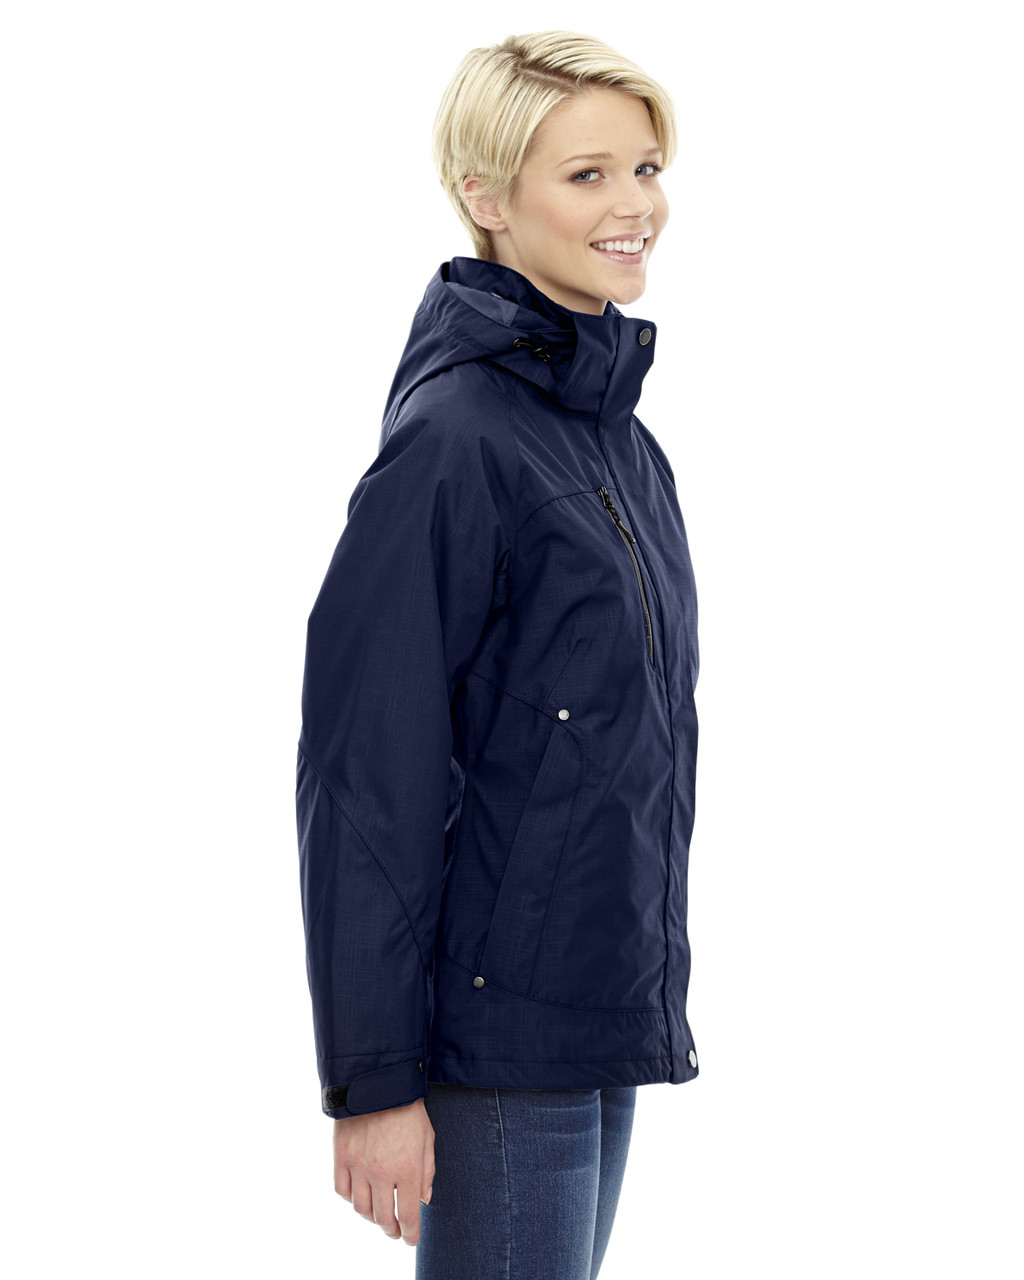 Classic Navy - side 78178 North End Caprice 3-in-1 Jacket with Soft Shell Liner | Blankclothing.ca